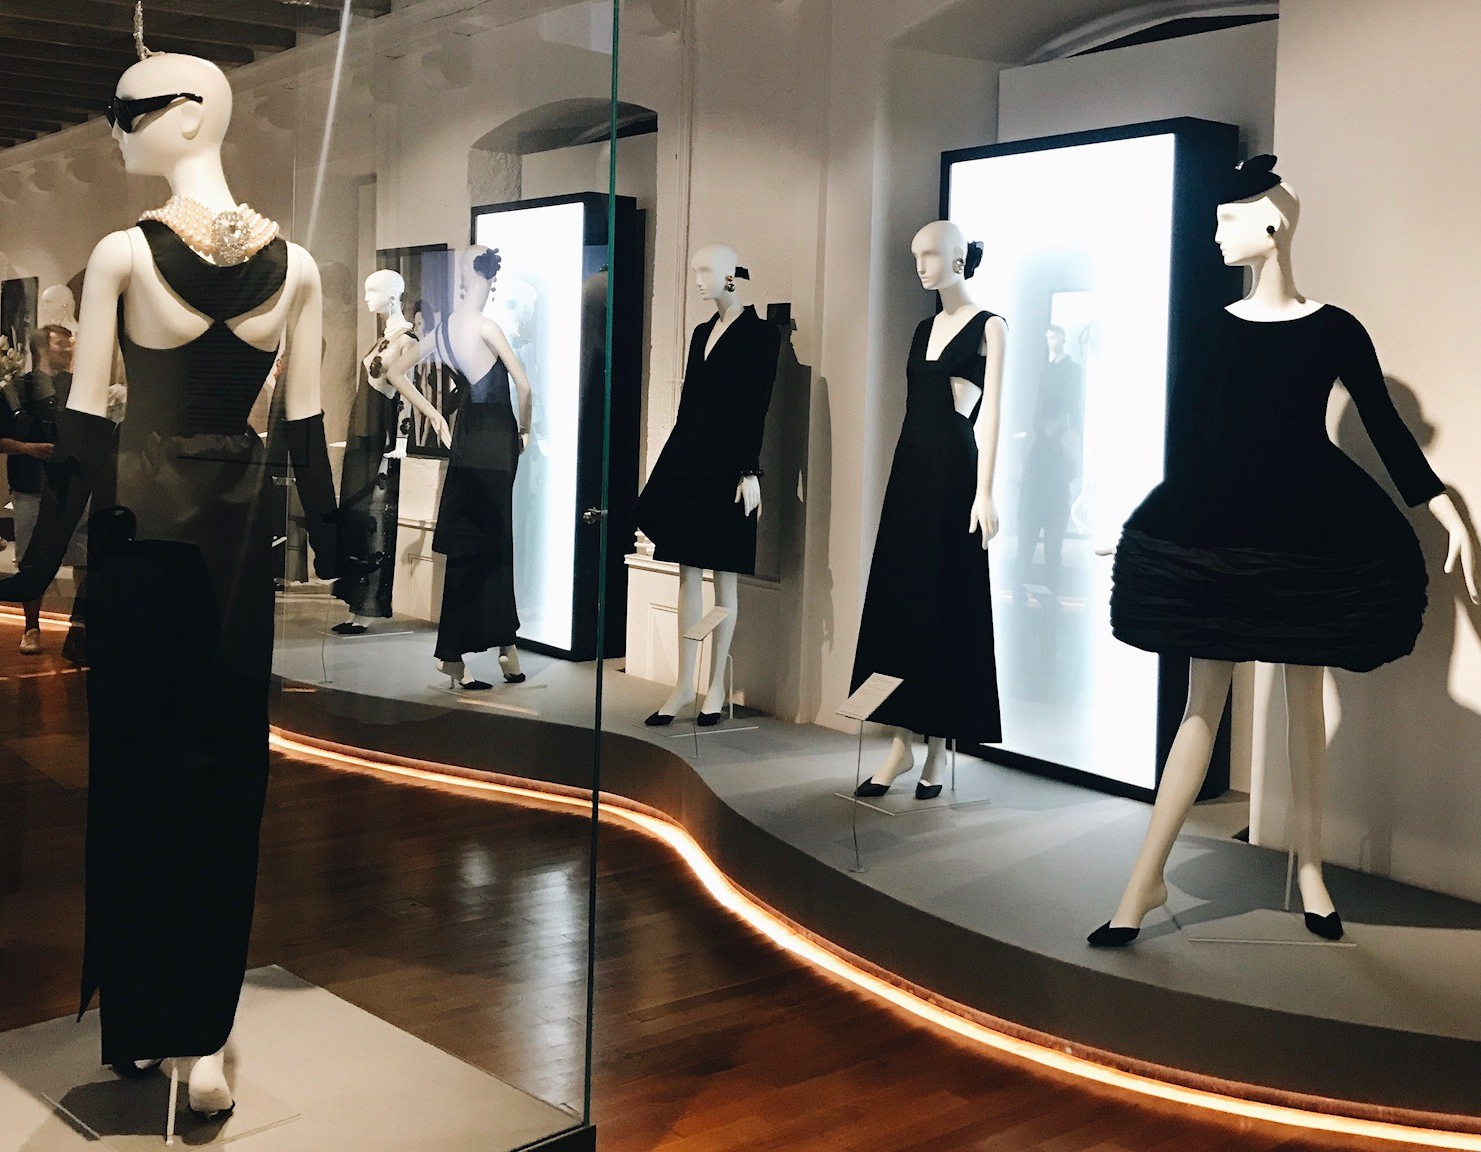 exposition-hepburn-givenchy-morges-2017.jpg